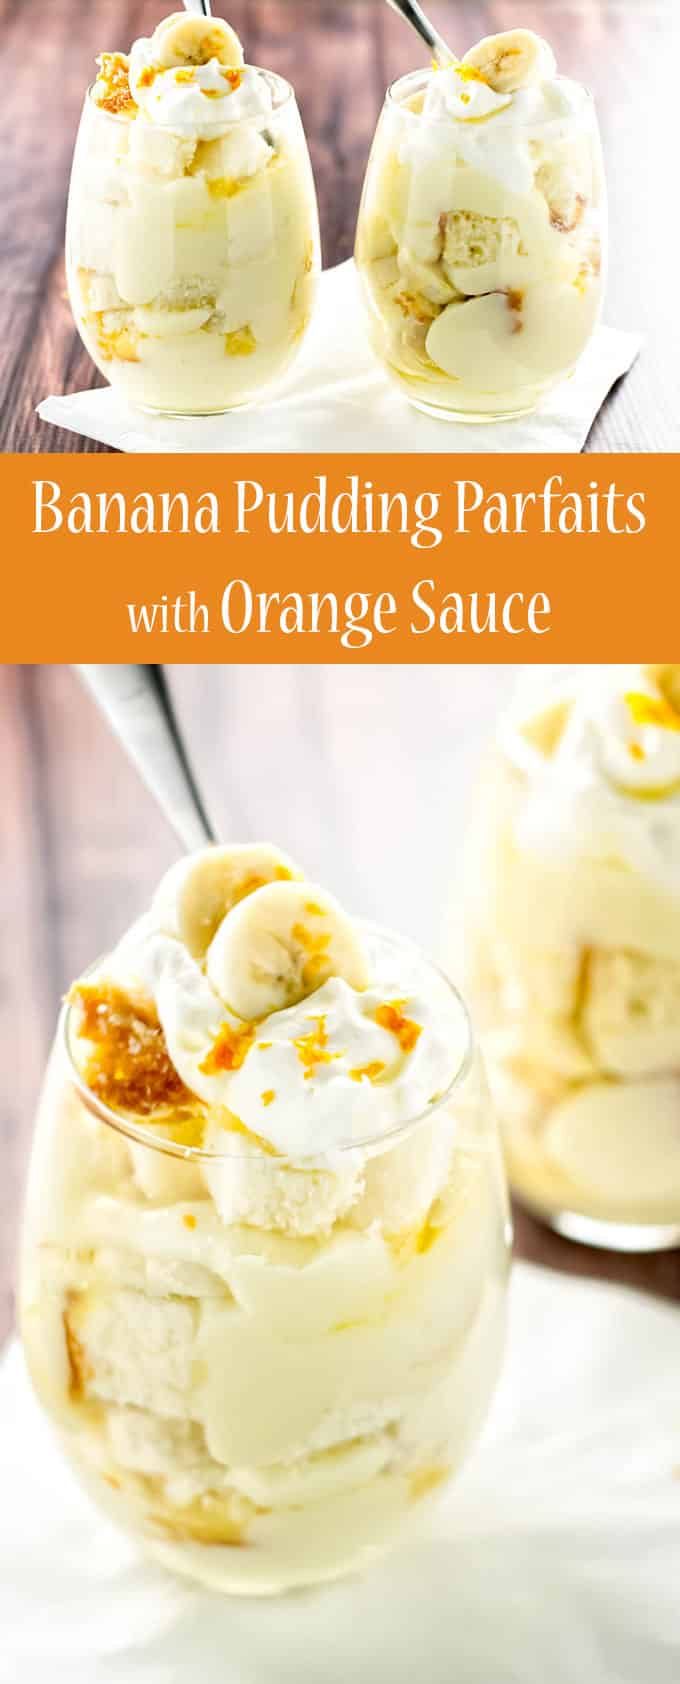 Creamy homemade pudding layered with soft, sweet pound cake, fresh banana, and a bright orange sauce | girlgonegourmet.com